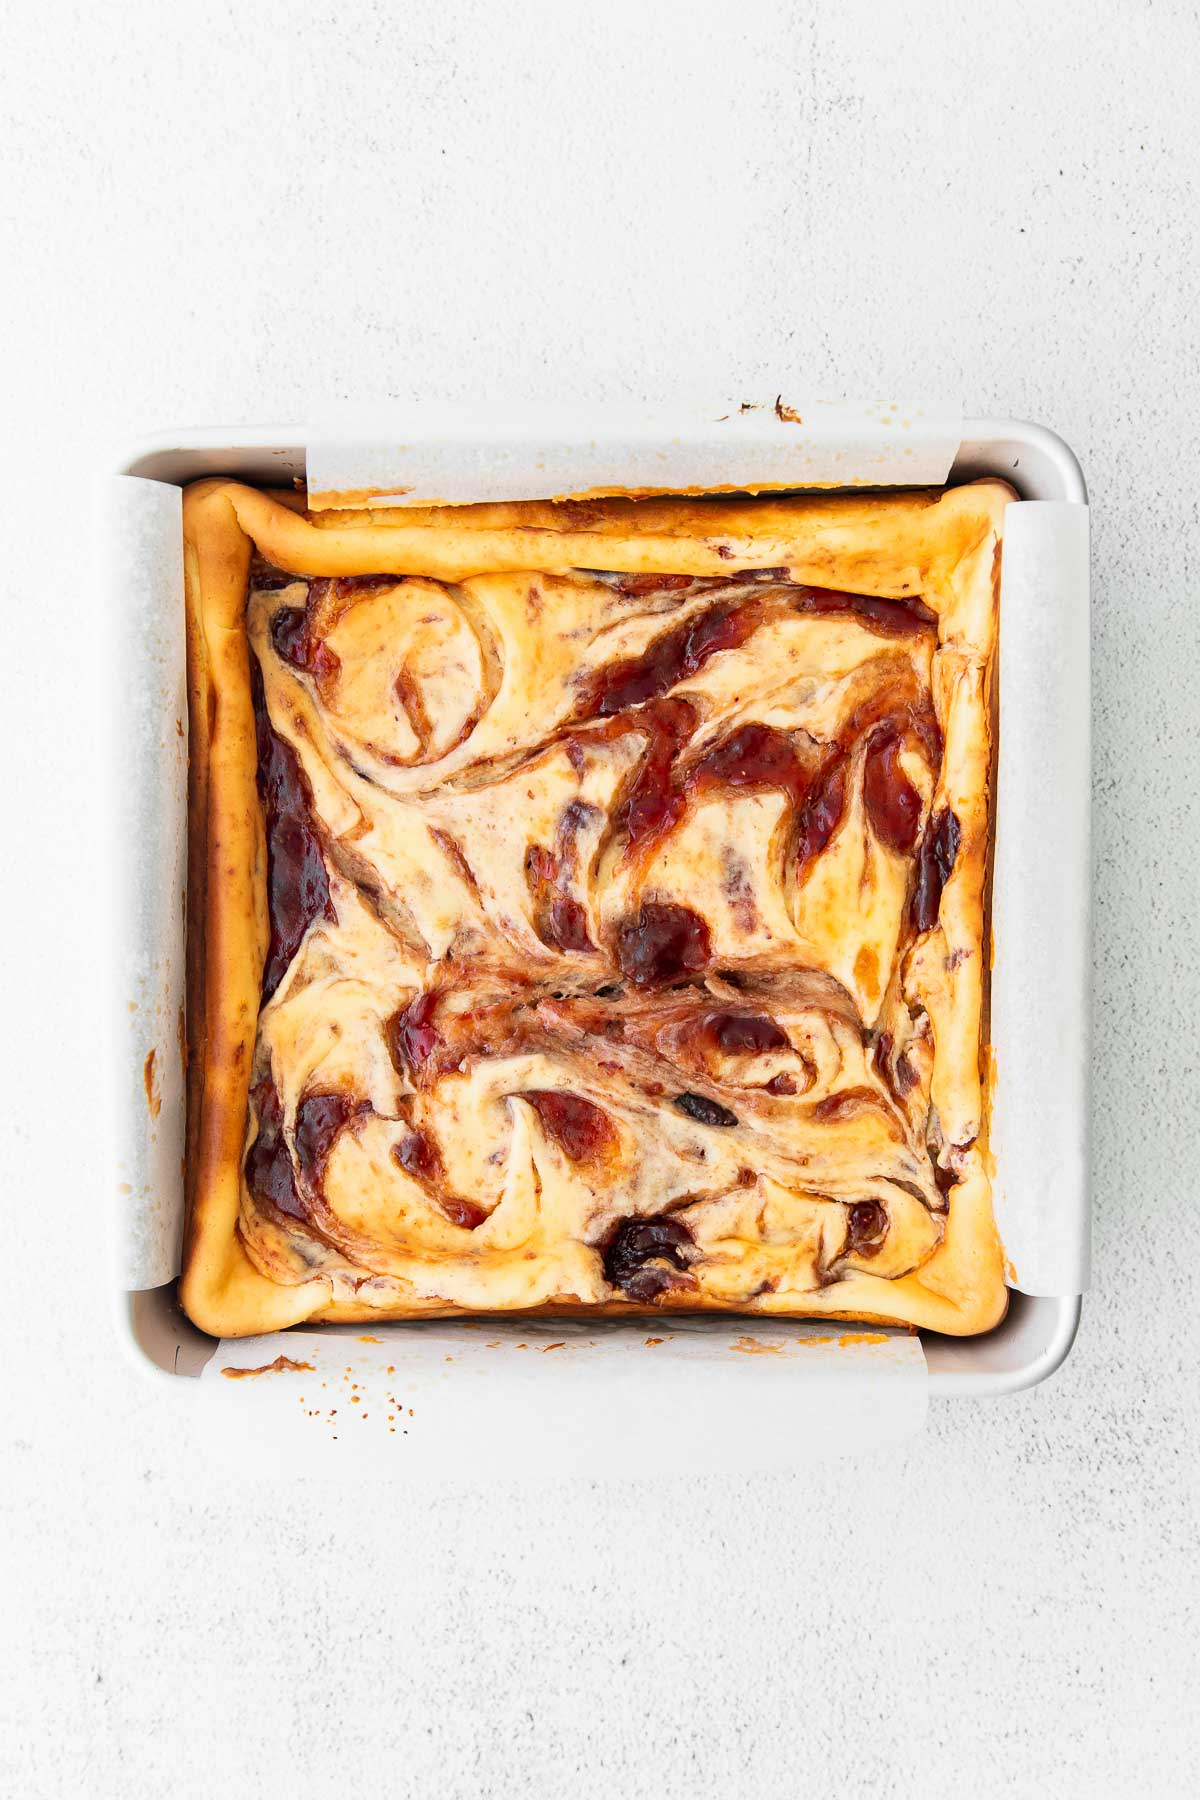 strawberry swirled cheesecake bars baked in a square baking dish